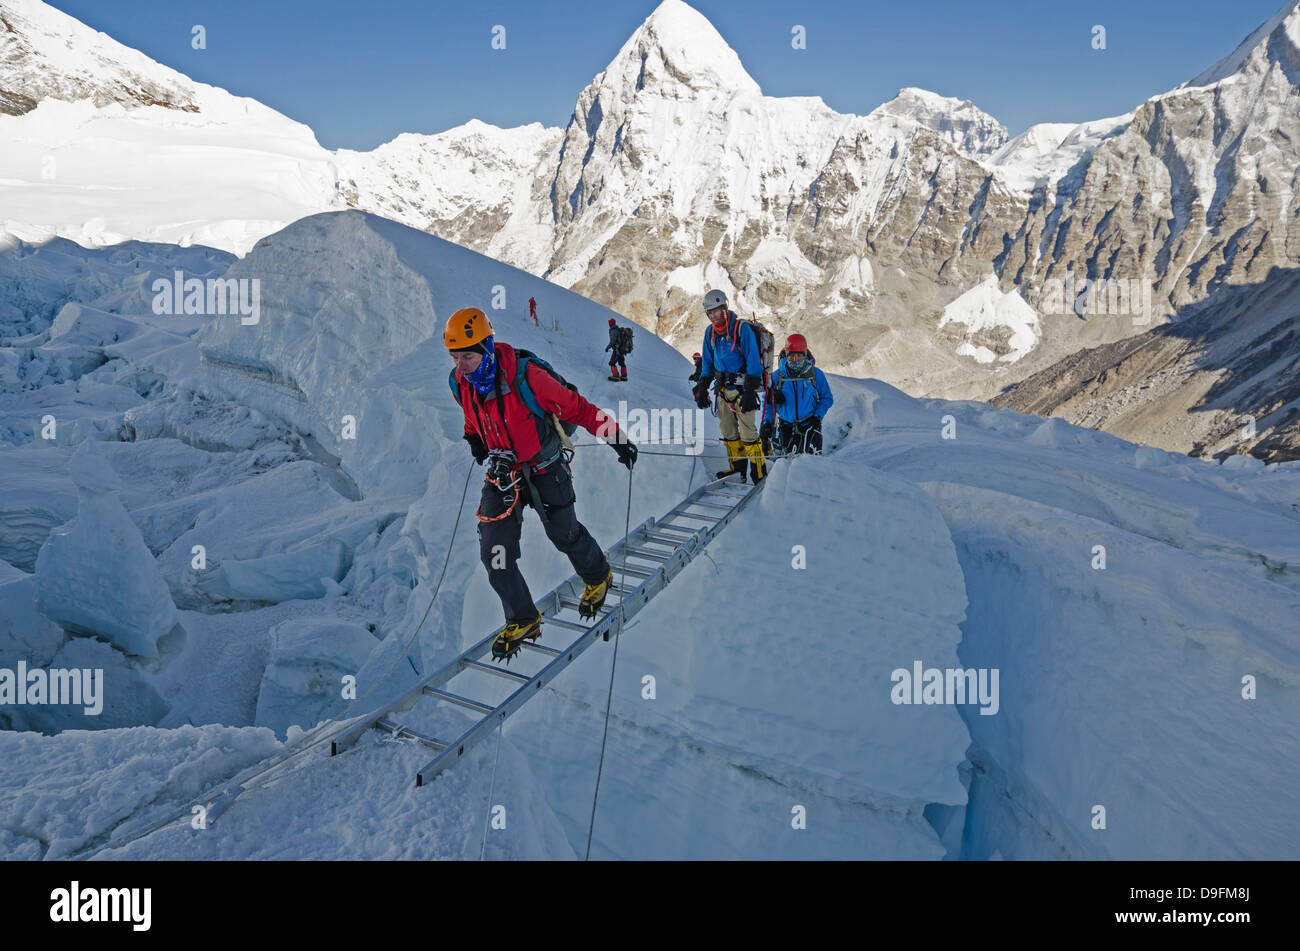 Crossing ladders in the Khumbu icefall on Mount Everest, Sagarmatha National Park, UNESCO World Heritage Site, Nepal, - Stock Image